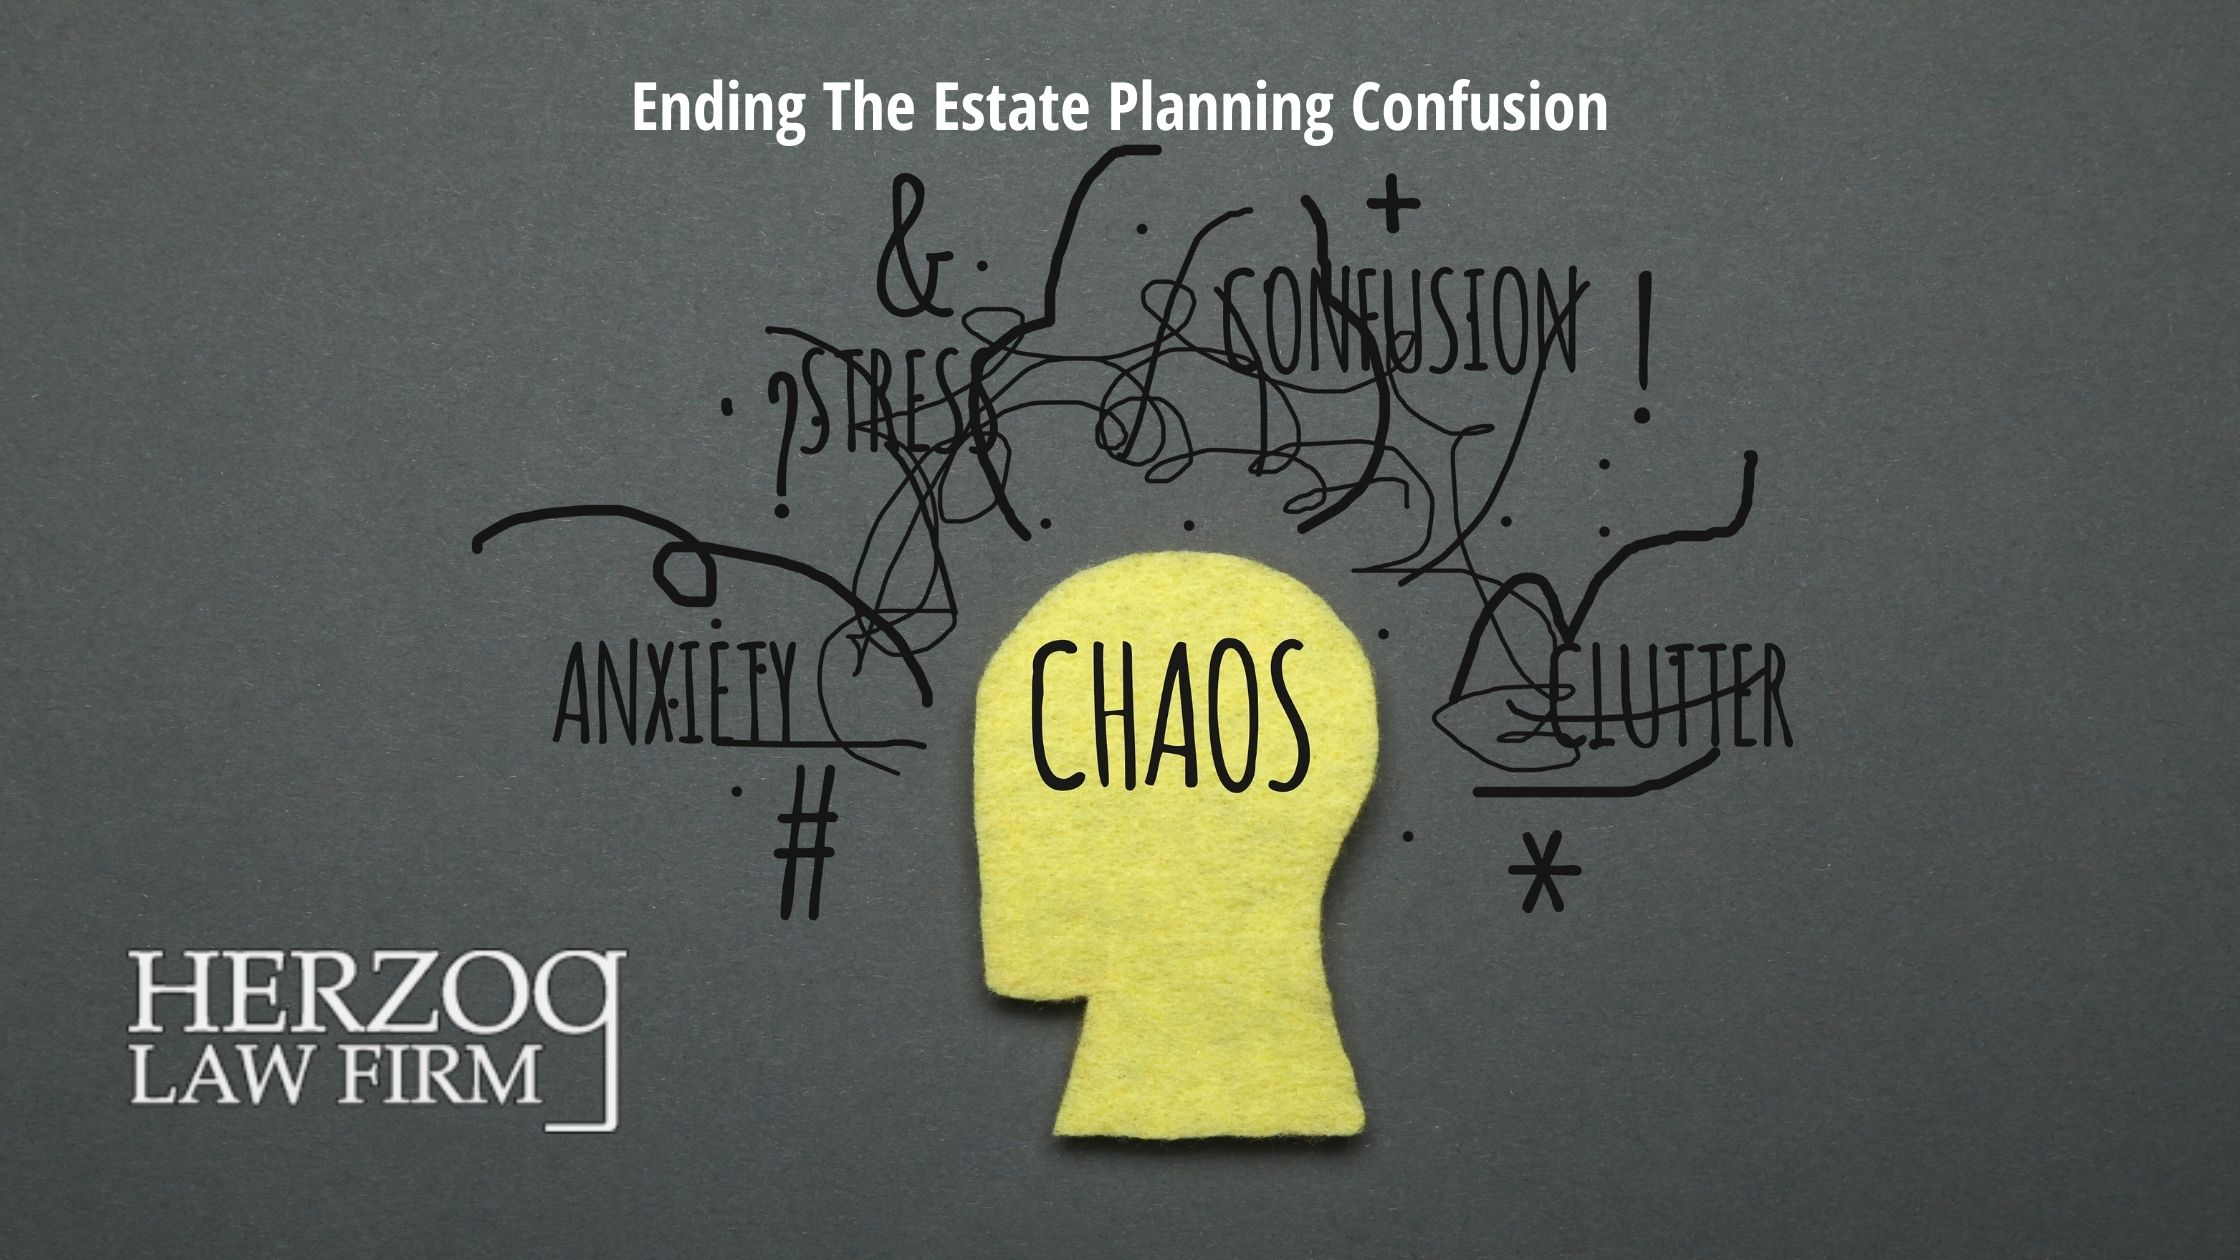 Ending The Estate Planning Confusion